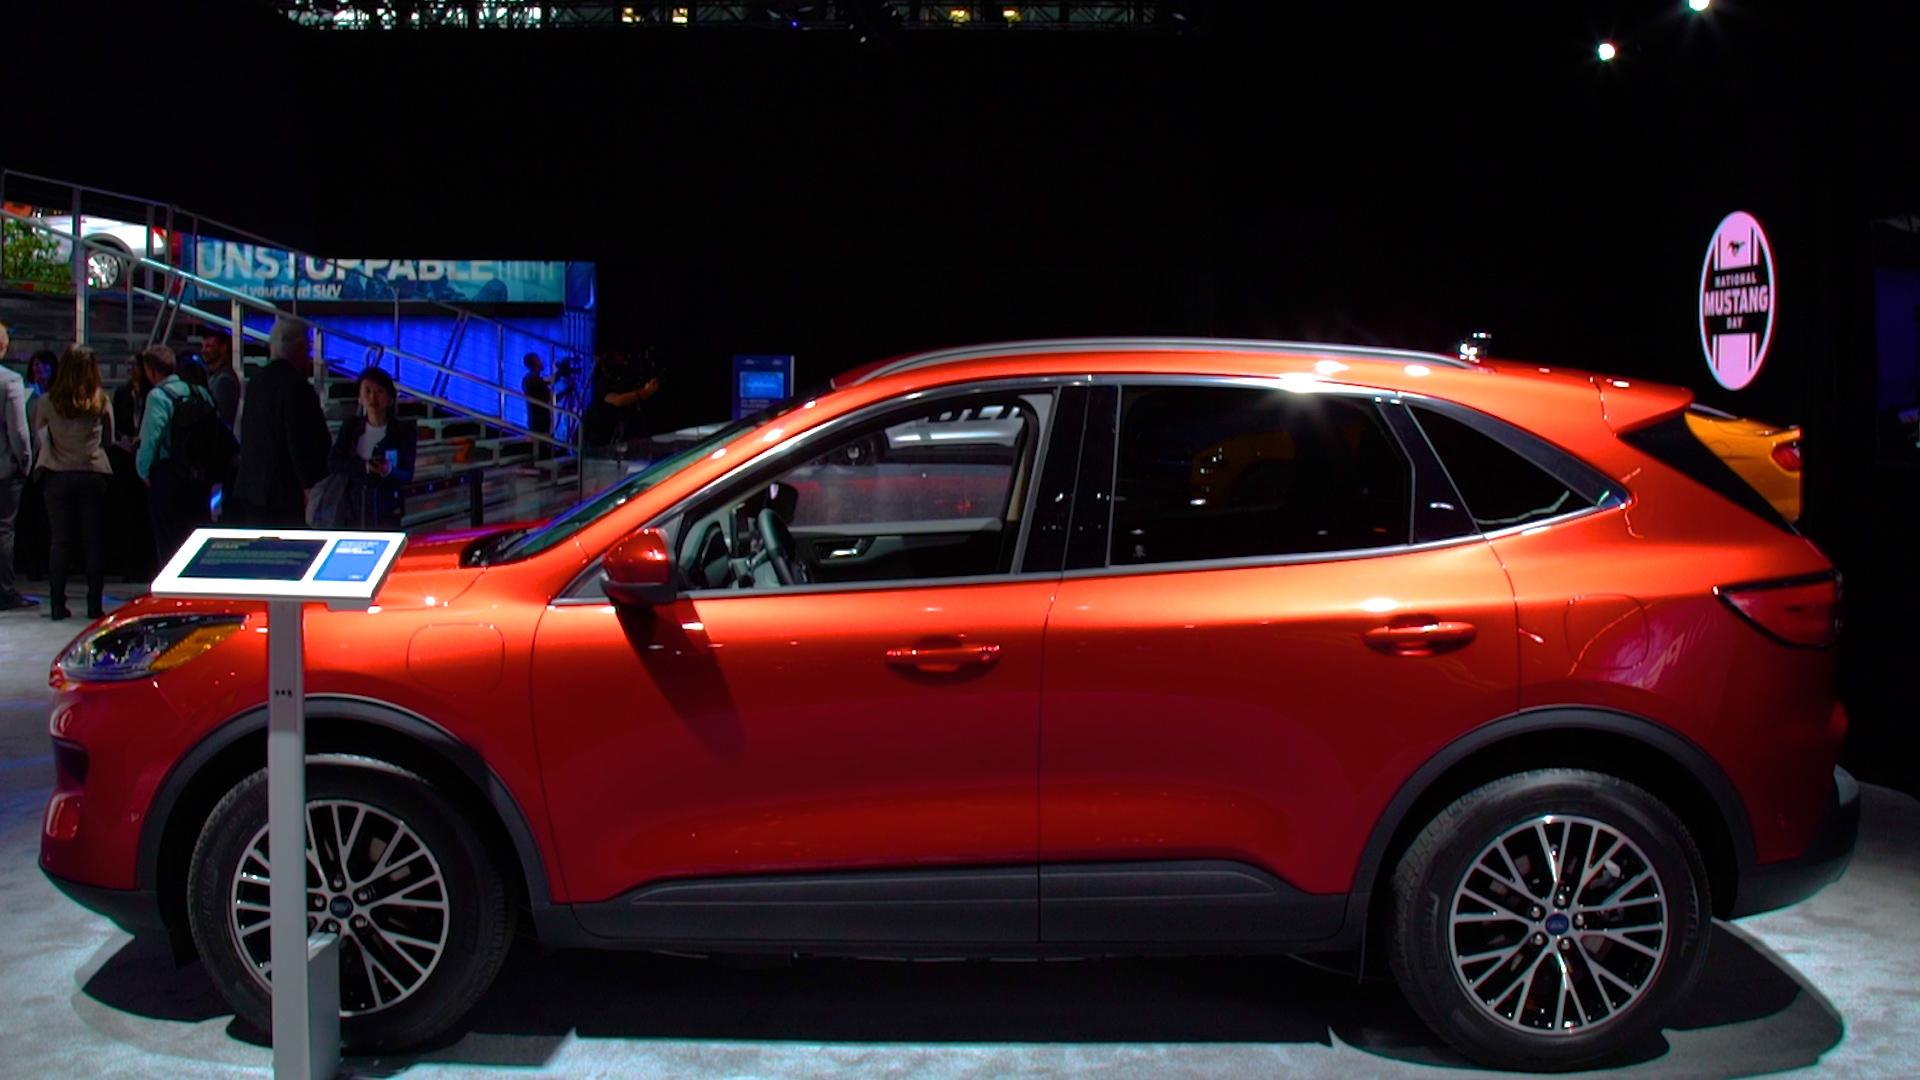 Best Gas Dryers 2020 Redesigned 2020 Ford Escape Adds Tech, Loses Weight   Consumer Reports